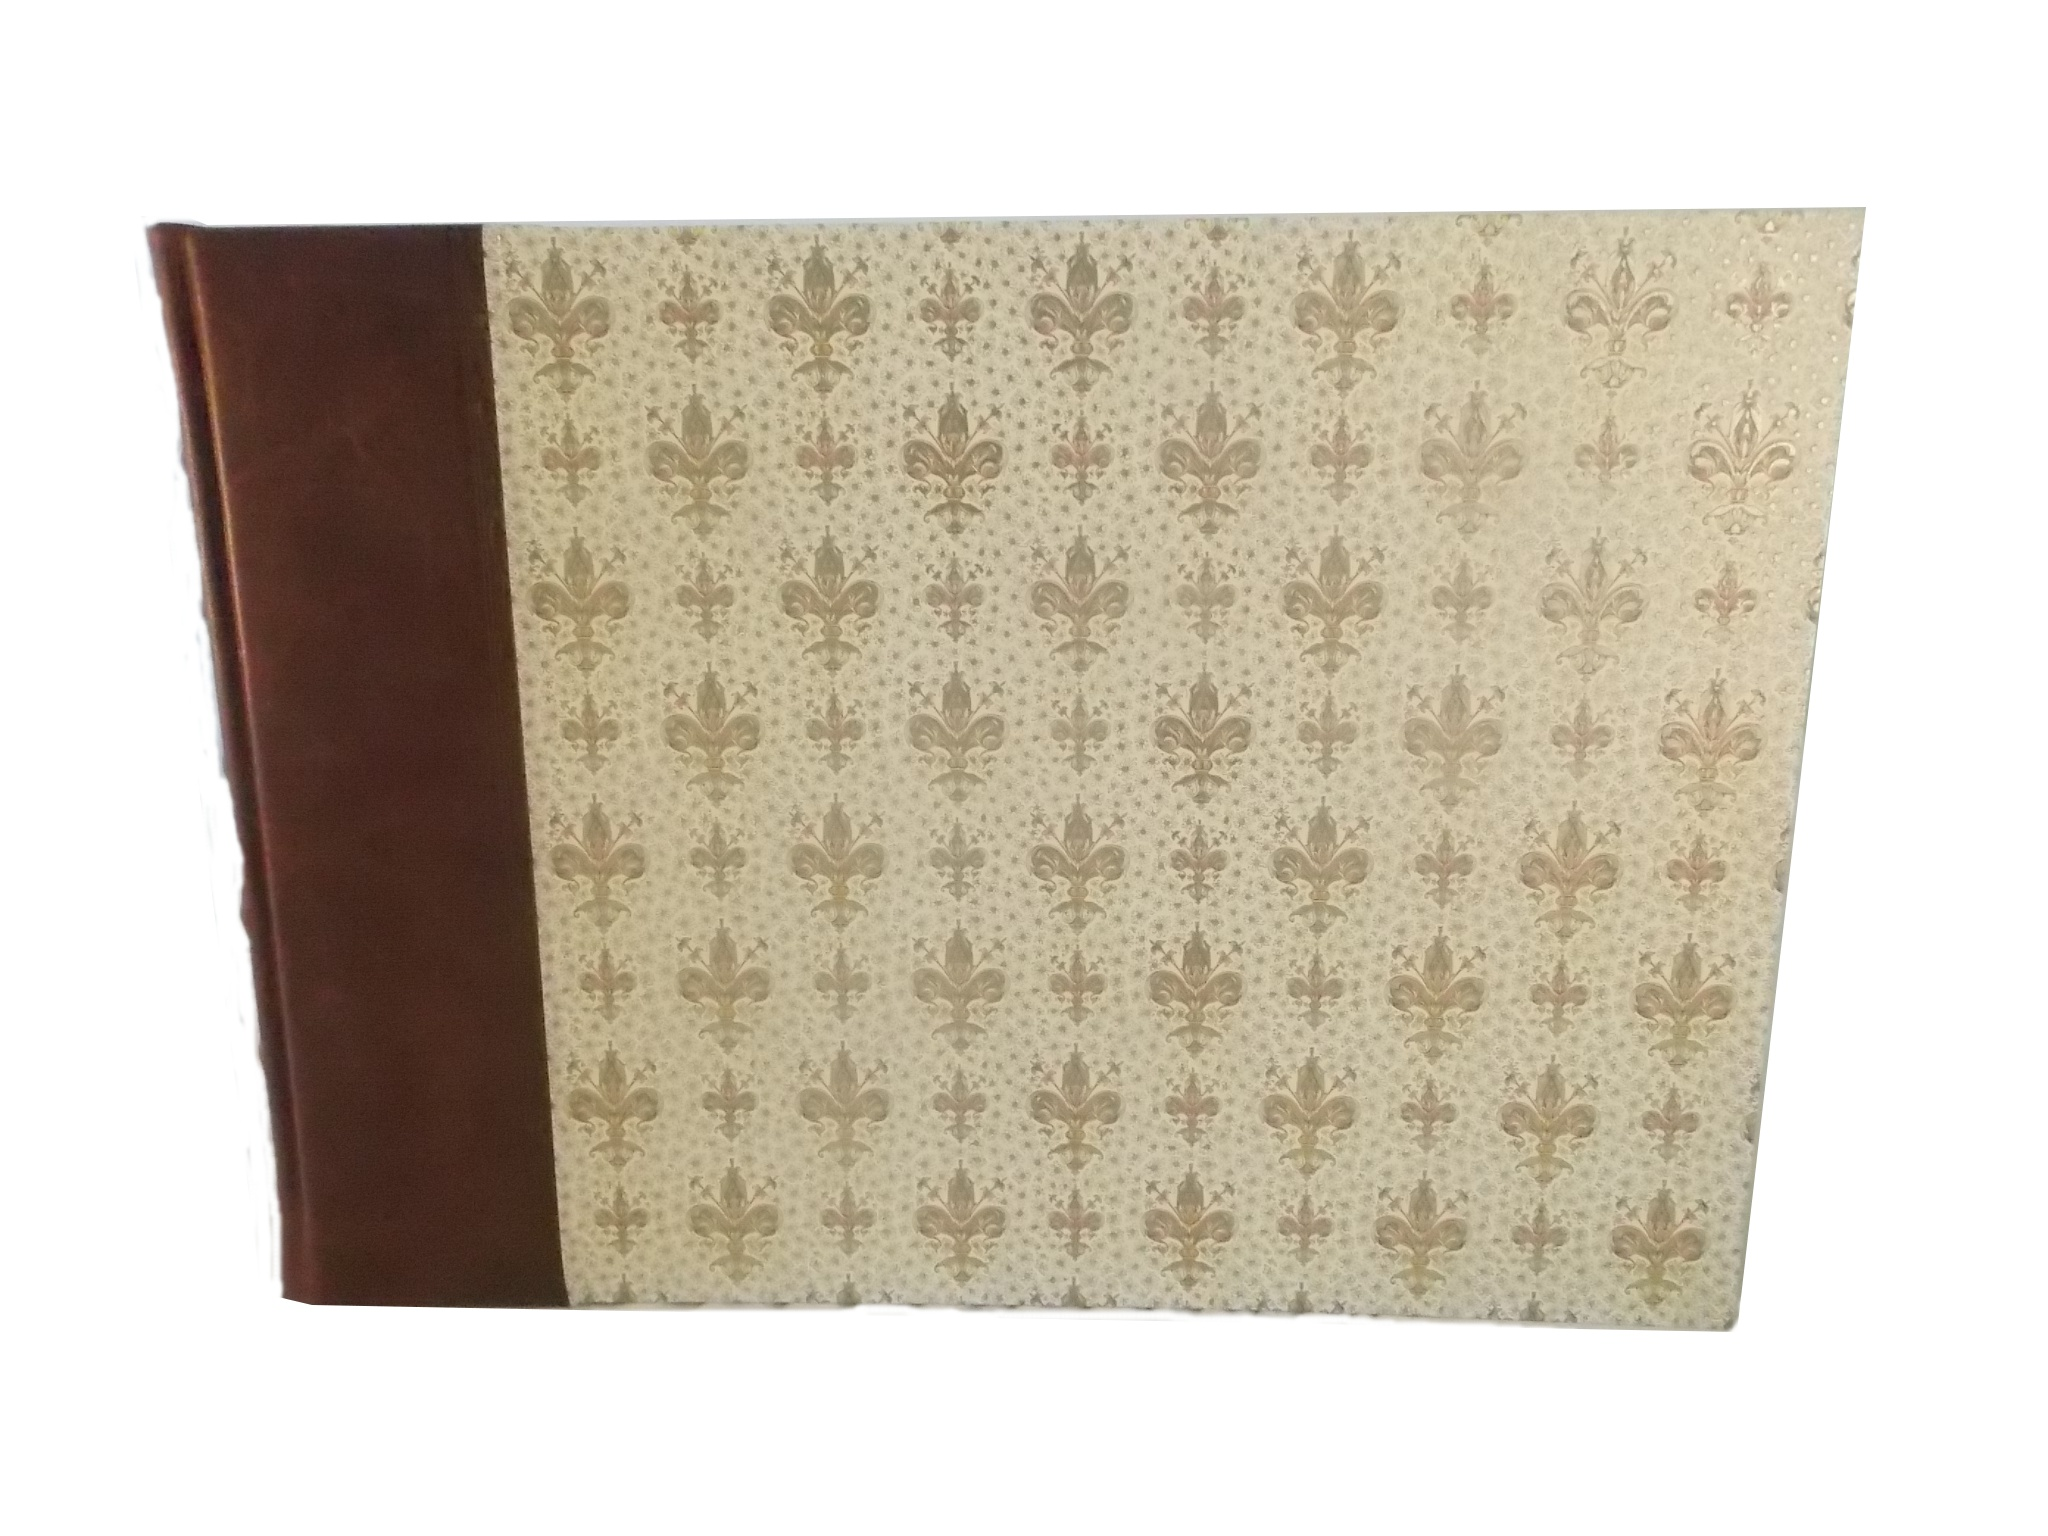 Fleur De Lys Leather Landscape Album